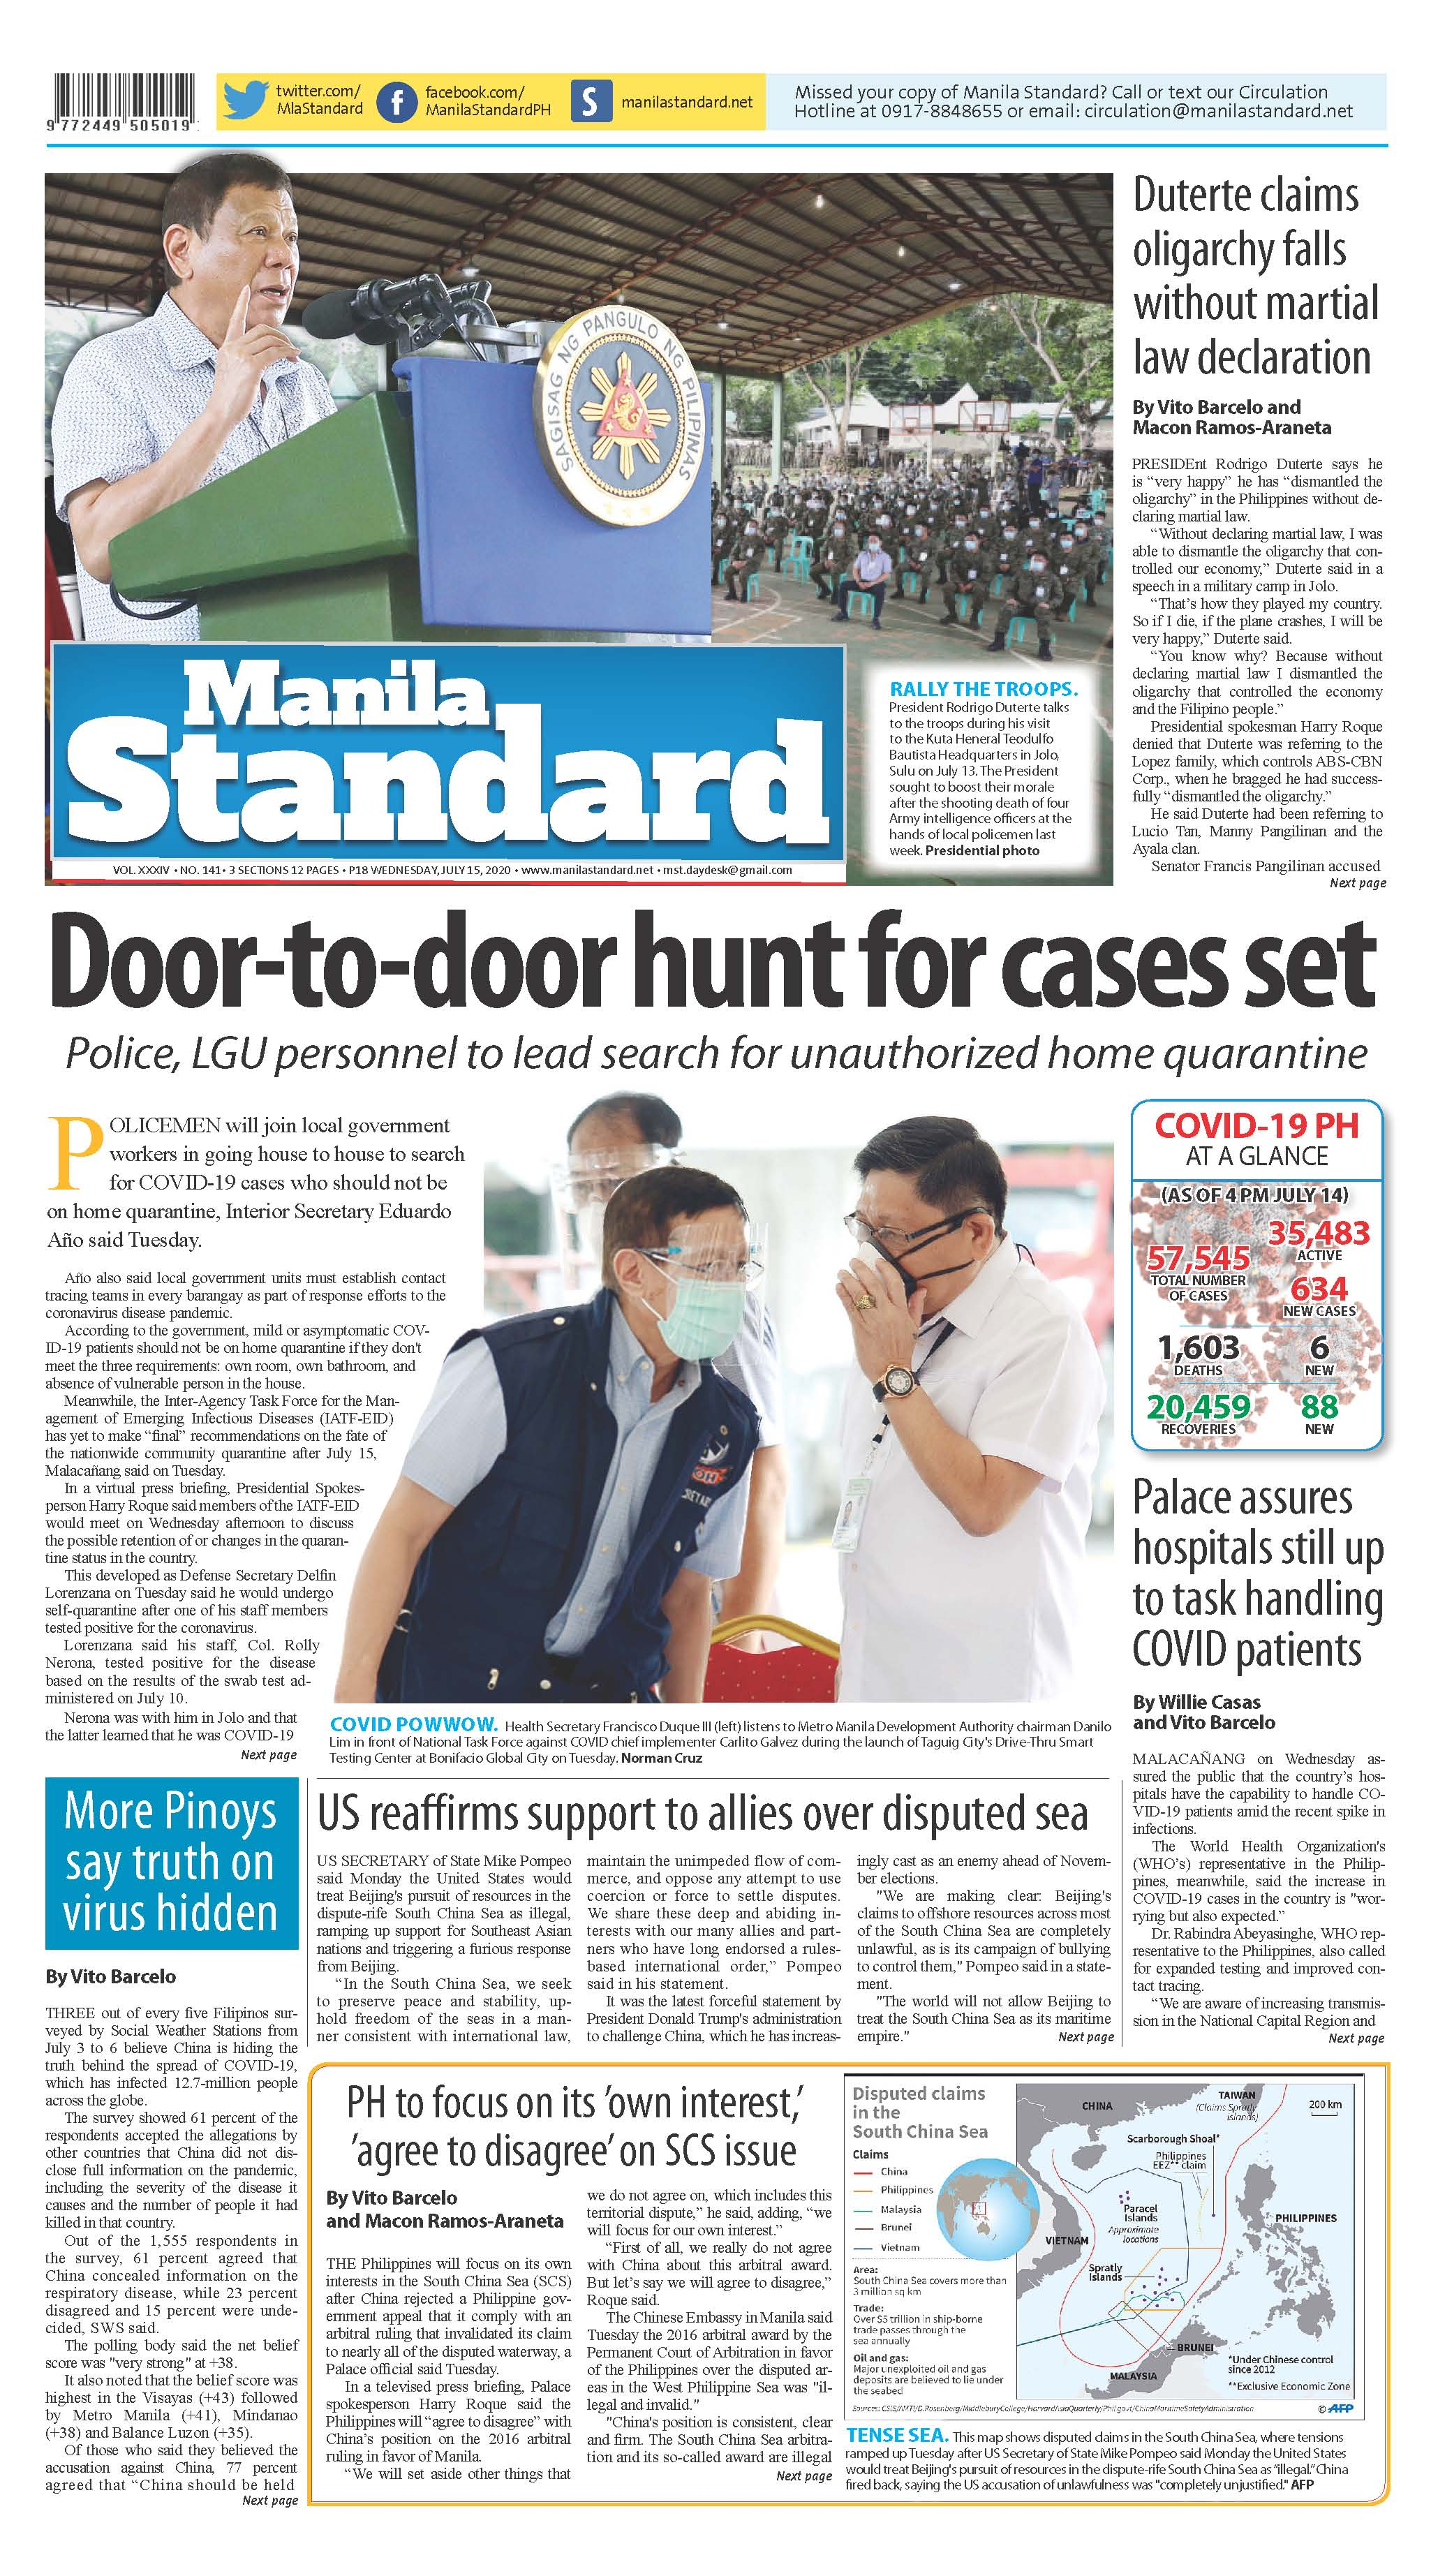 Wednesday Print Edition (7/15/2020)